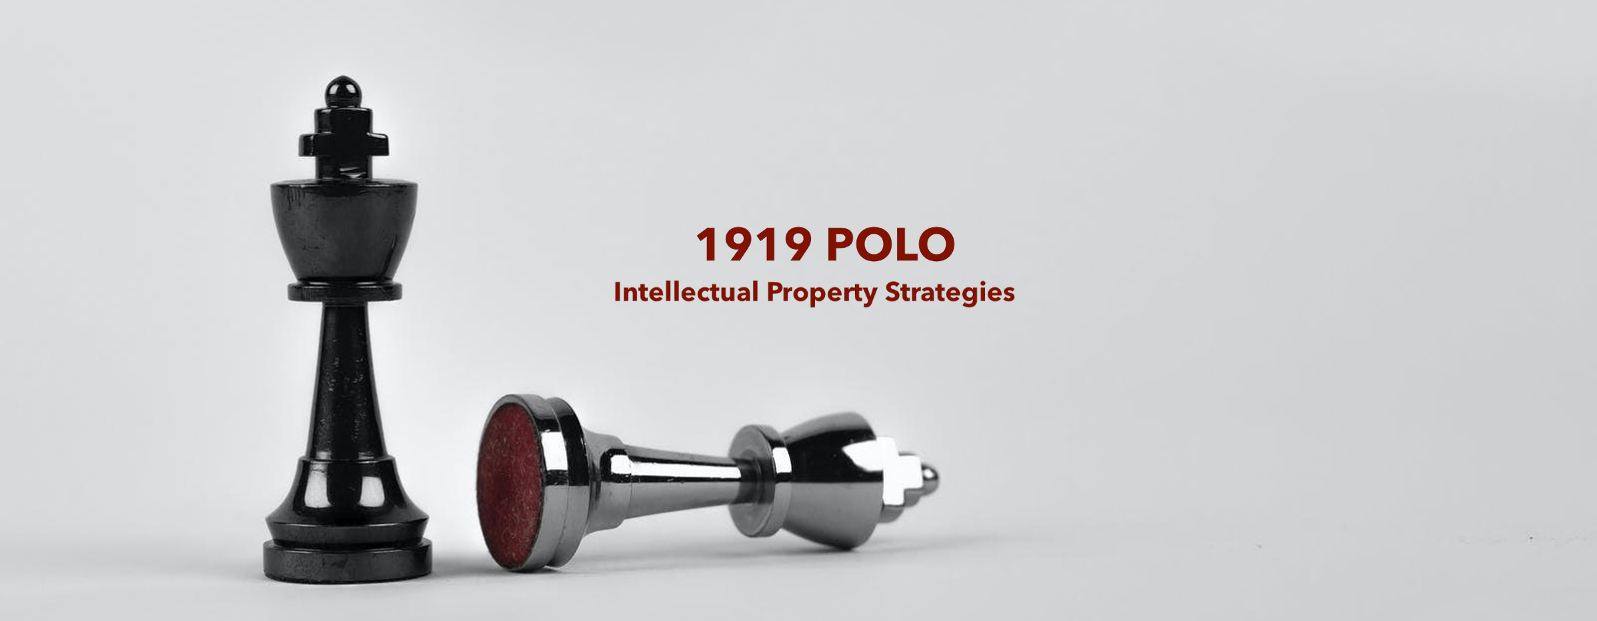 1919 Polo - Intellectual Property Strategies